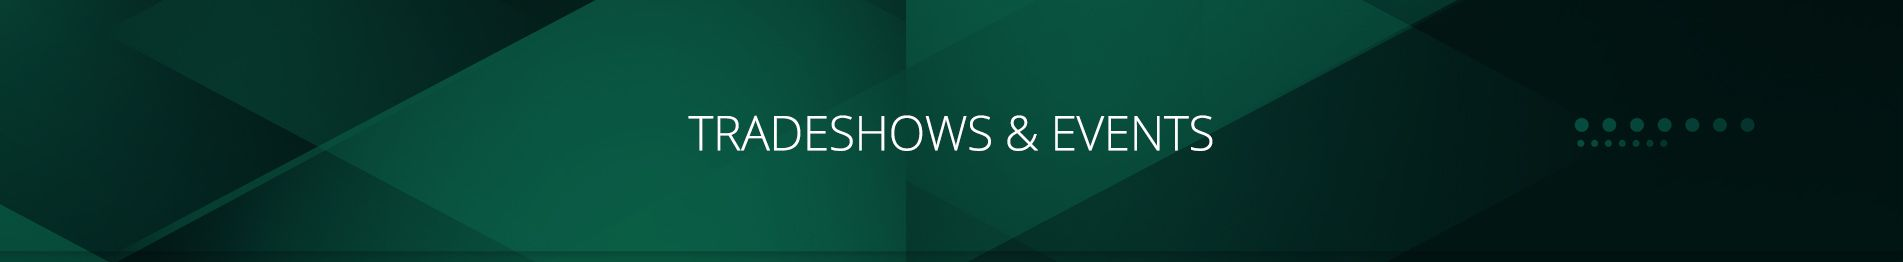 Envent Corporation | Tradeshows & Events